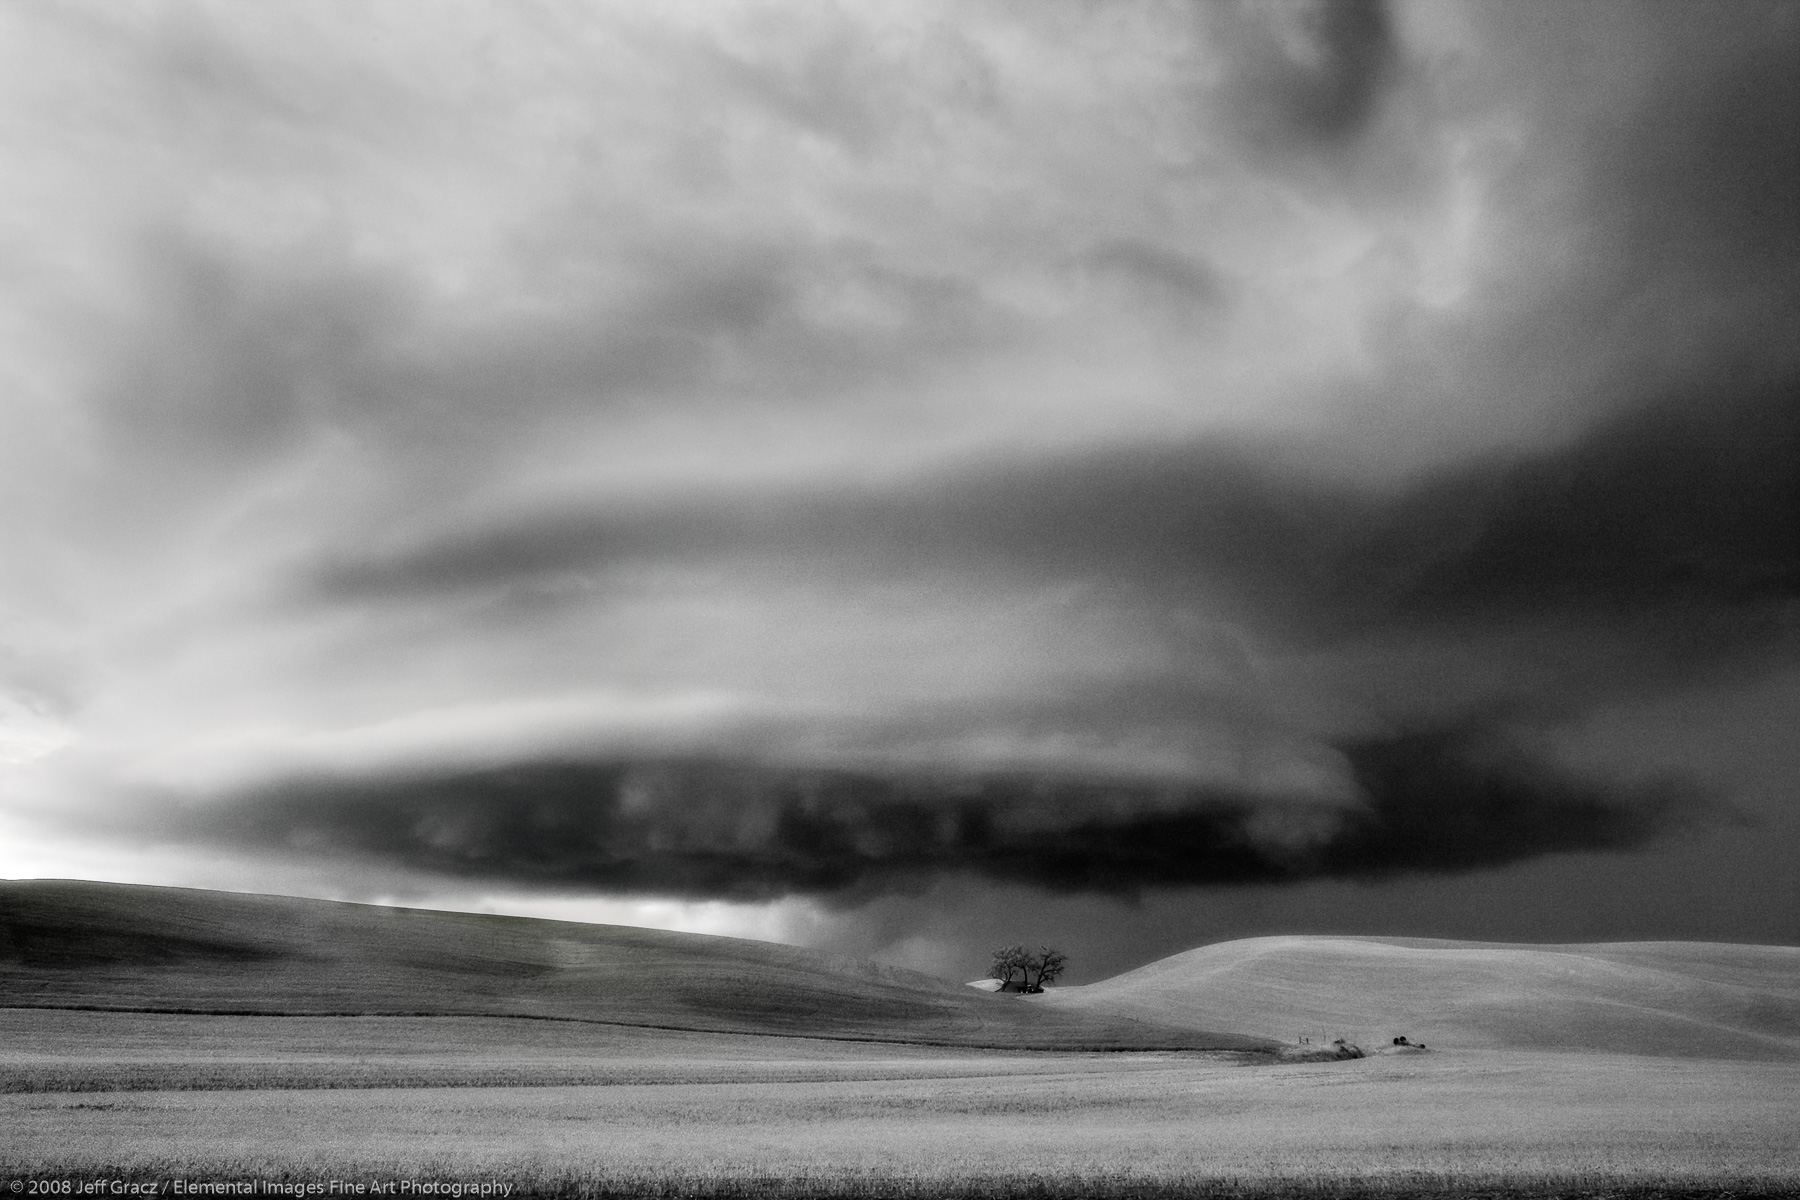 Wall cloud of thunderstorm with lone tree |  | WA | USA - © © 2008 Jeff Gracz / Elemental Images Fine Art Photography - All Rights Reserved Worldwide